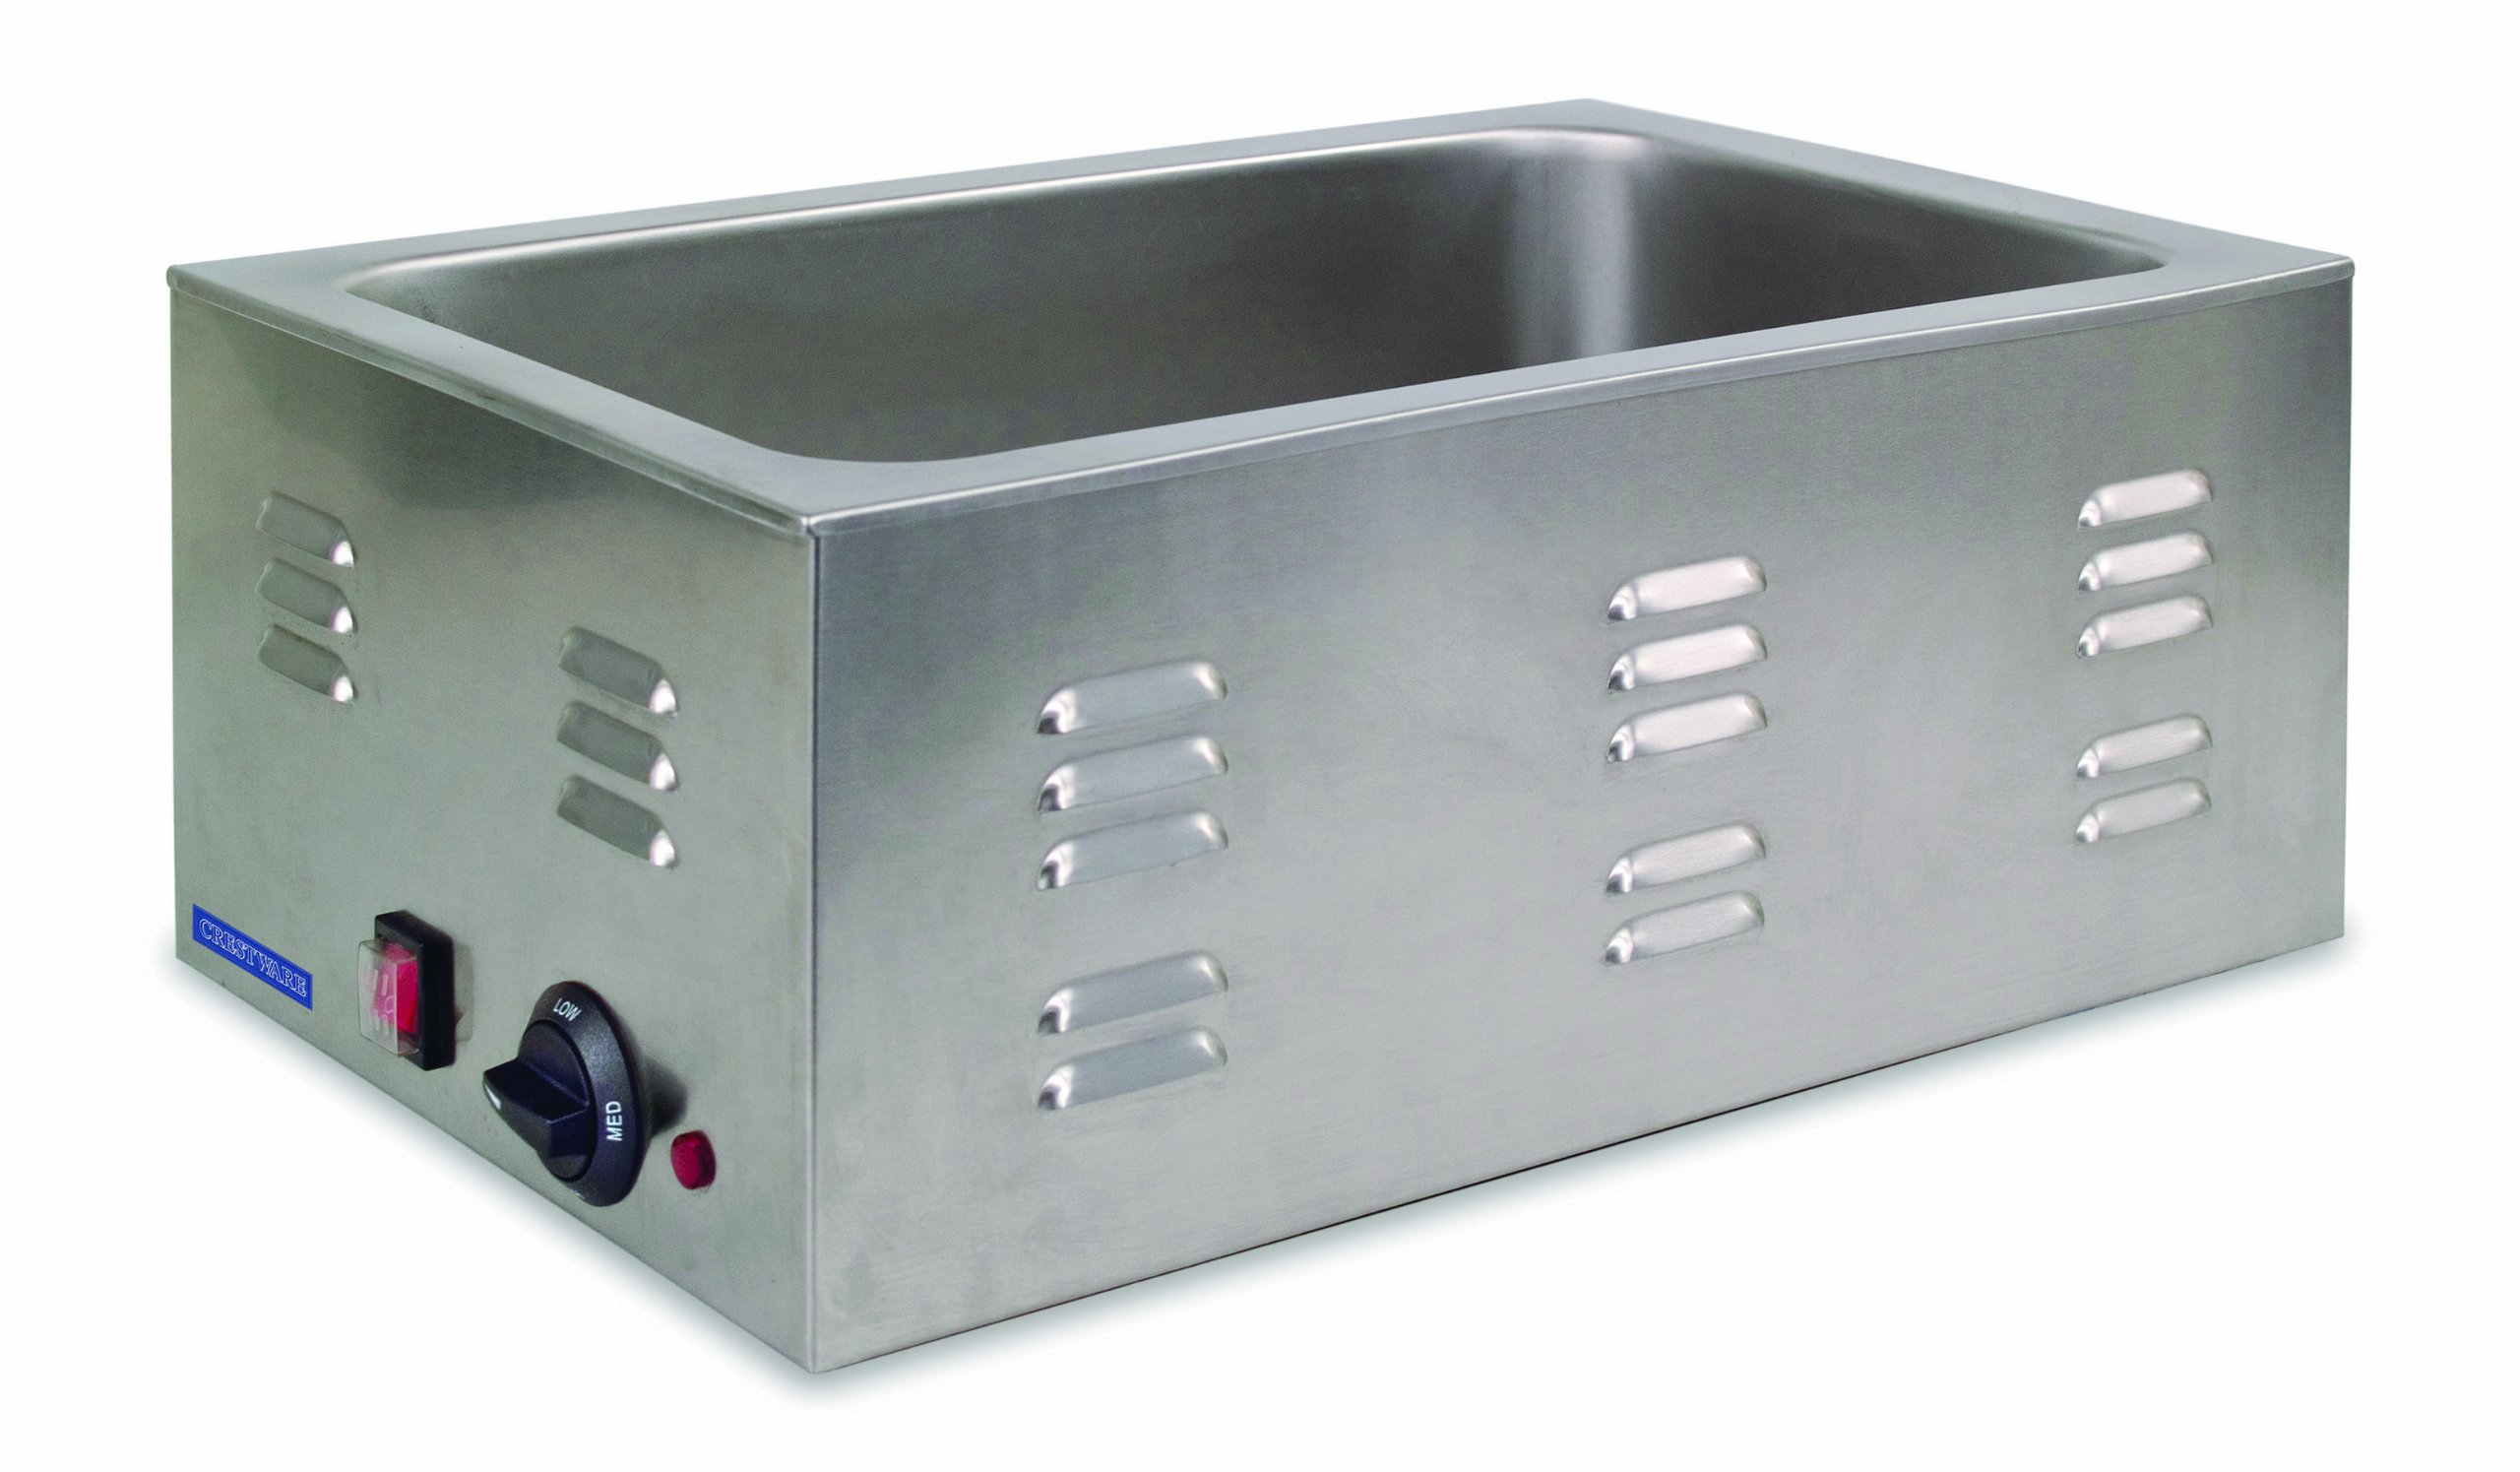 Crestware Electric Food Warmer